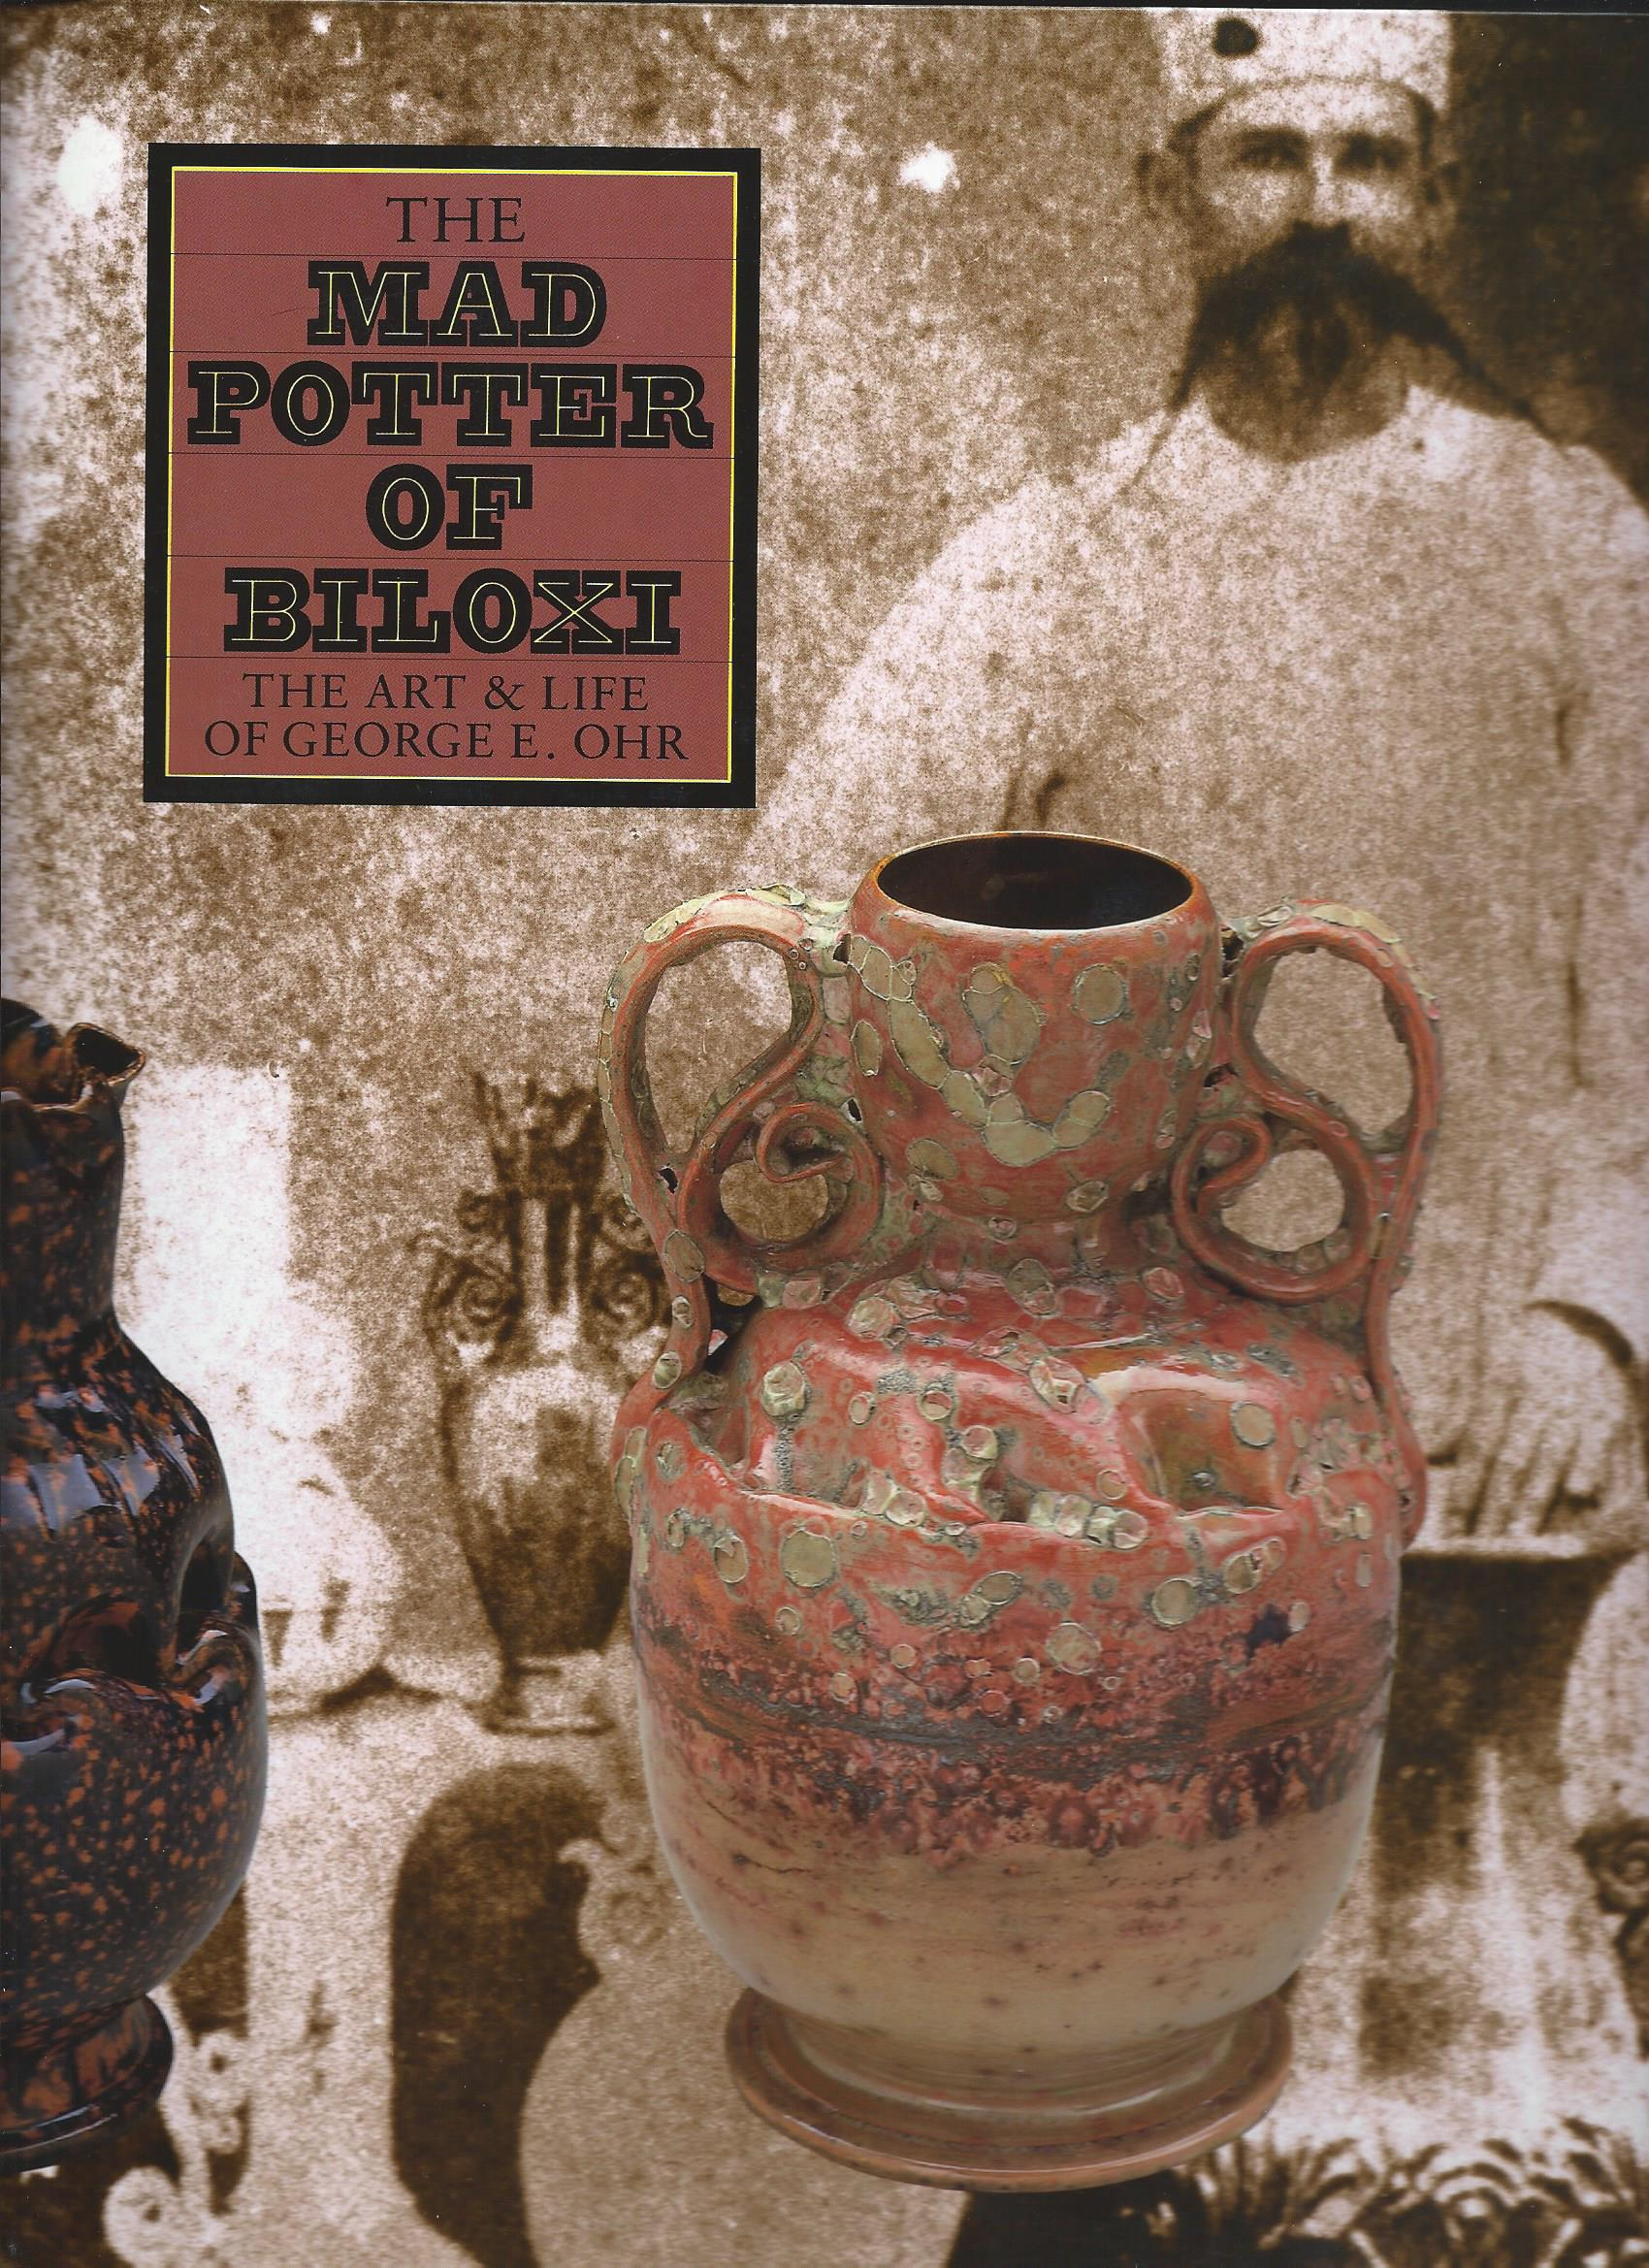 Image for The Art & Life of George E. Ohr; MAD POTTER OF BILOXI: